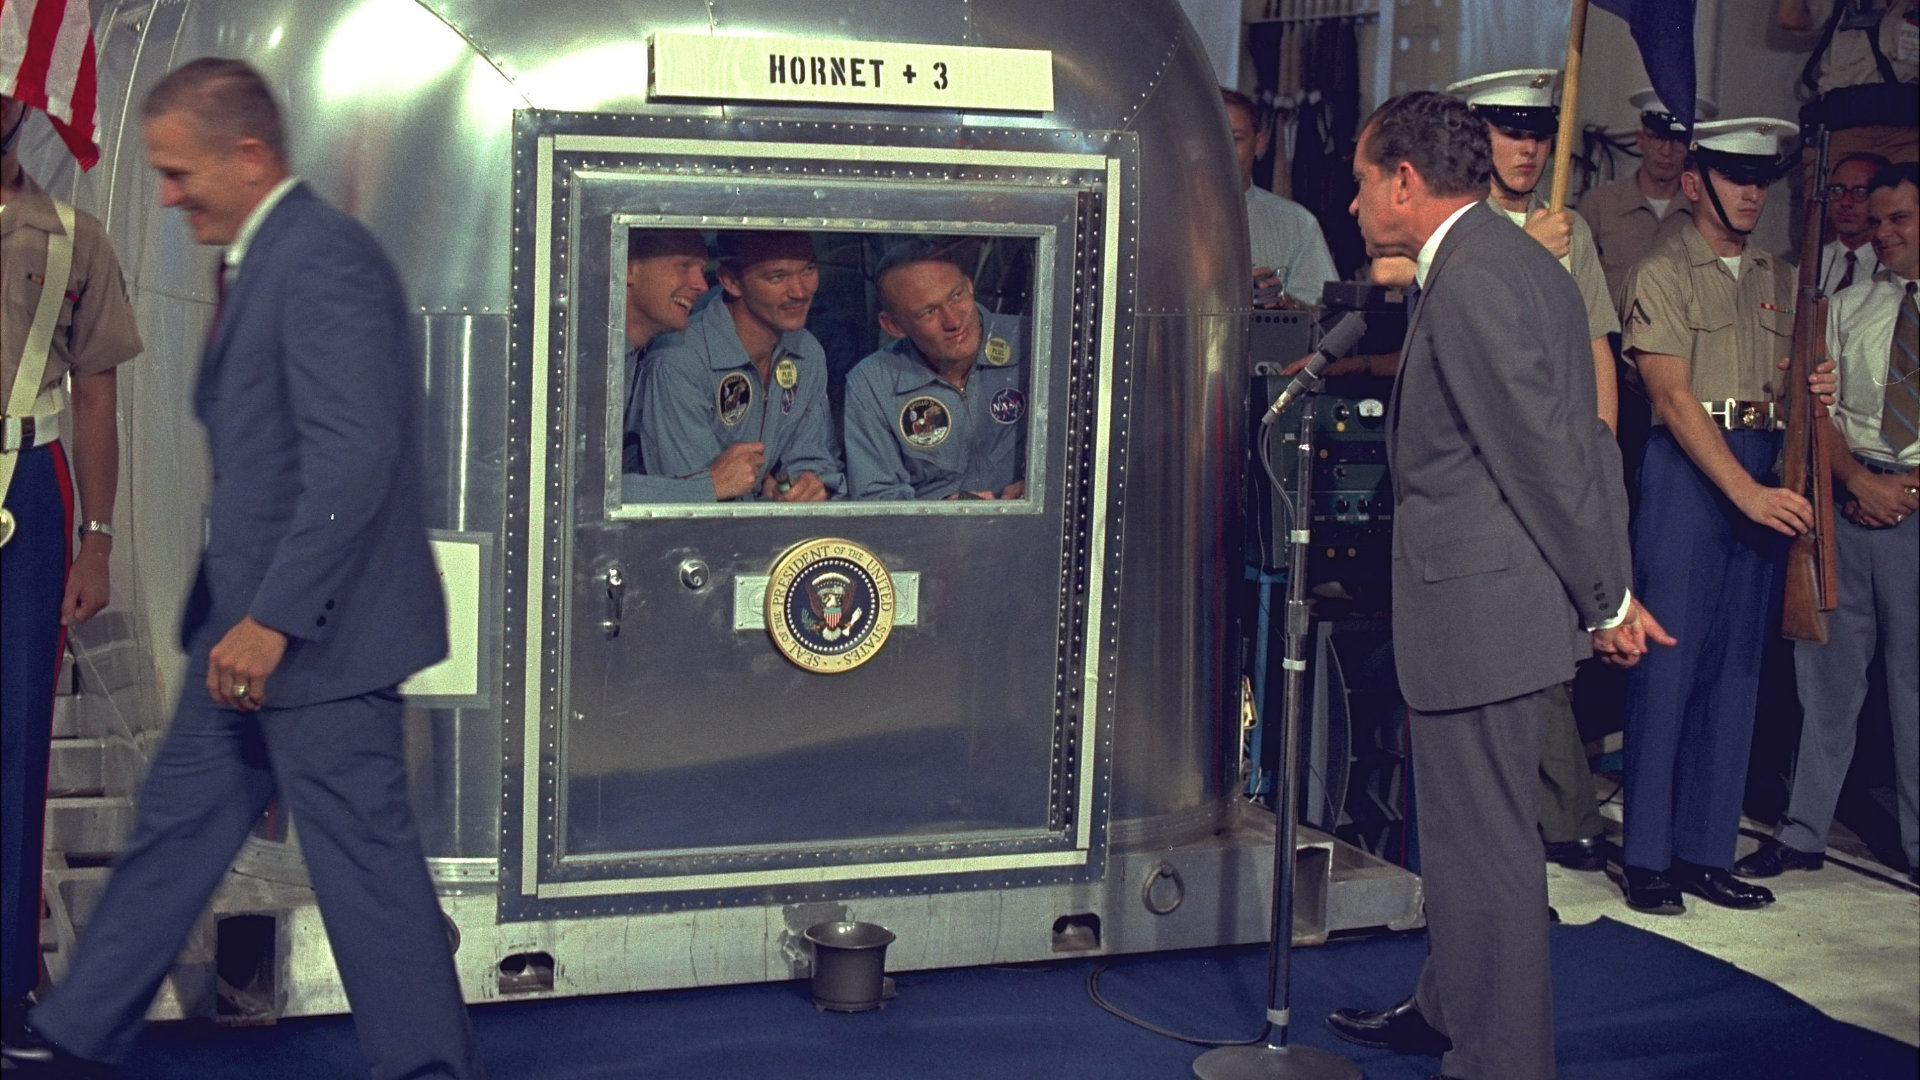 NIXON VIEWS APOLLO 11 CREW